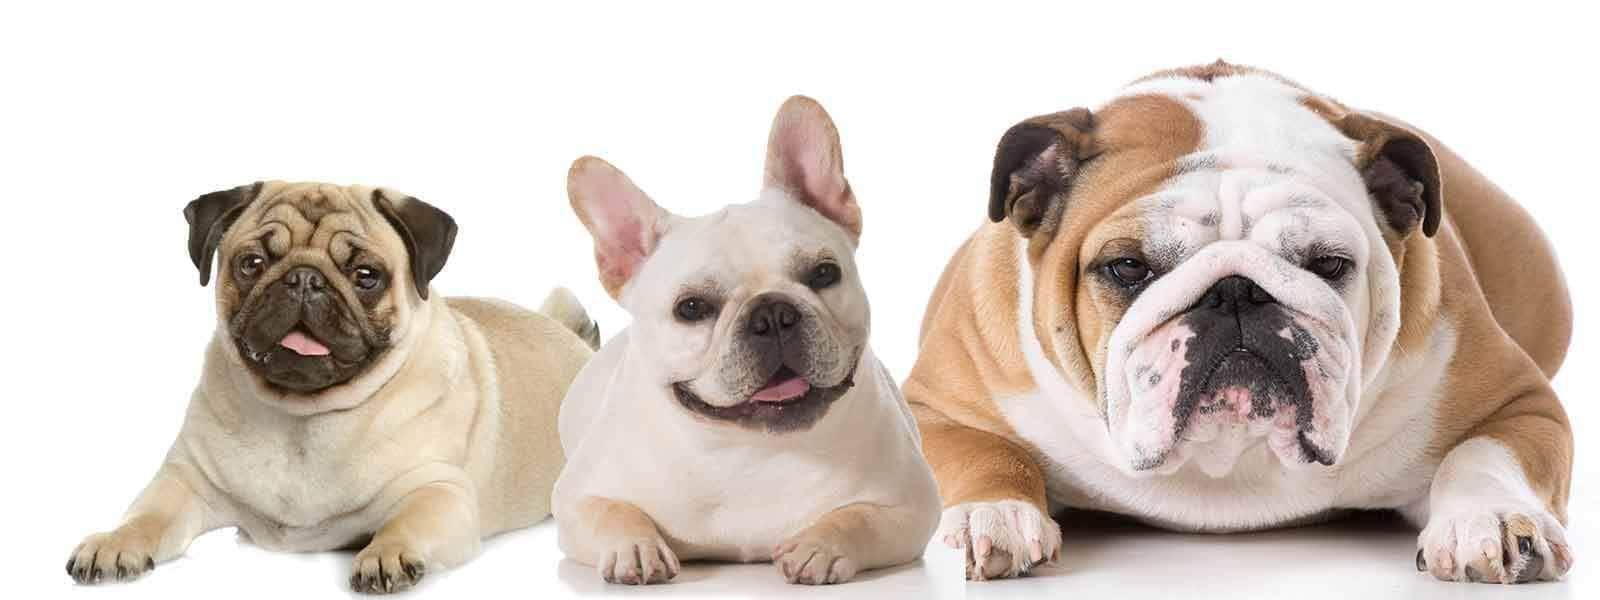 How To Clean Bulldog Faces or Any Flat-Faced Dog Face